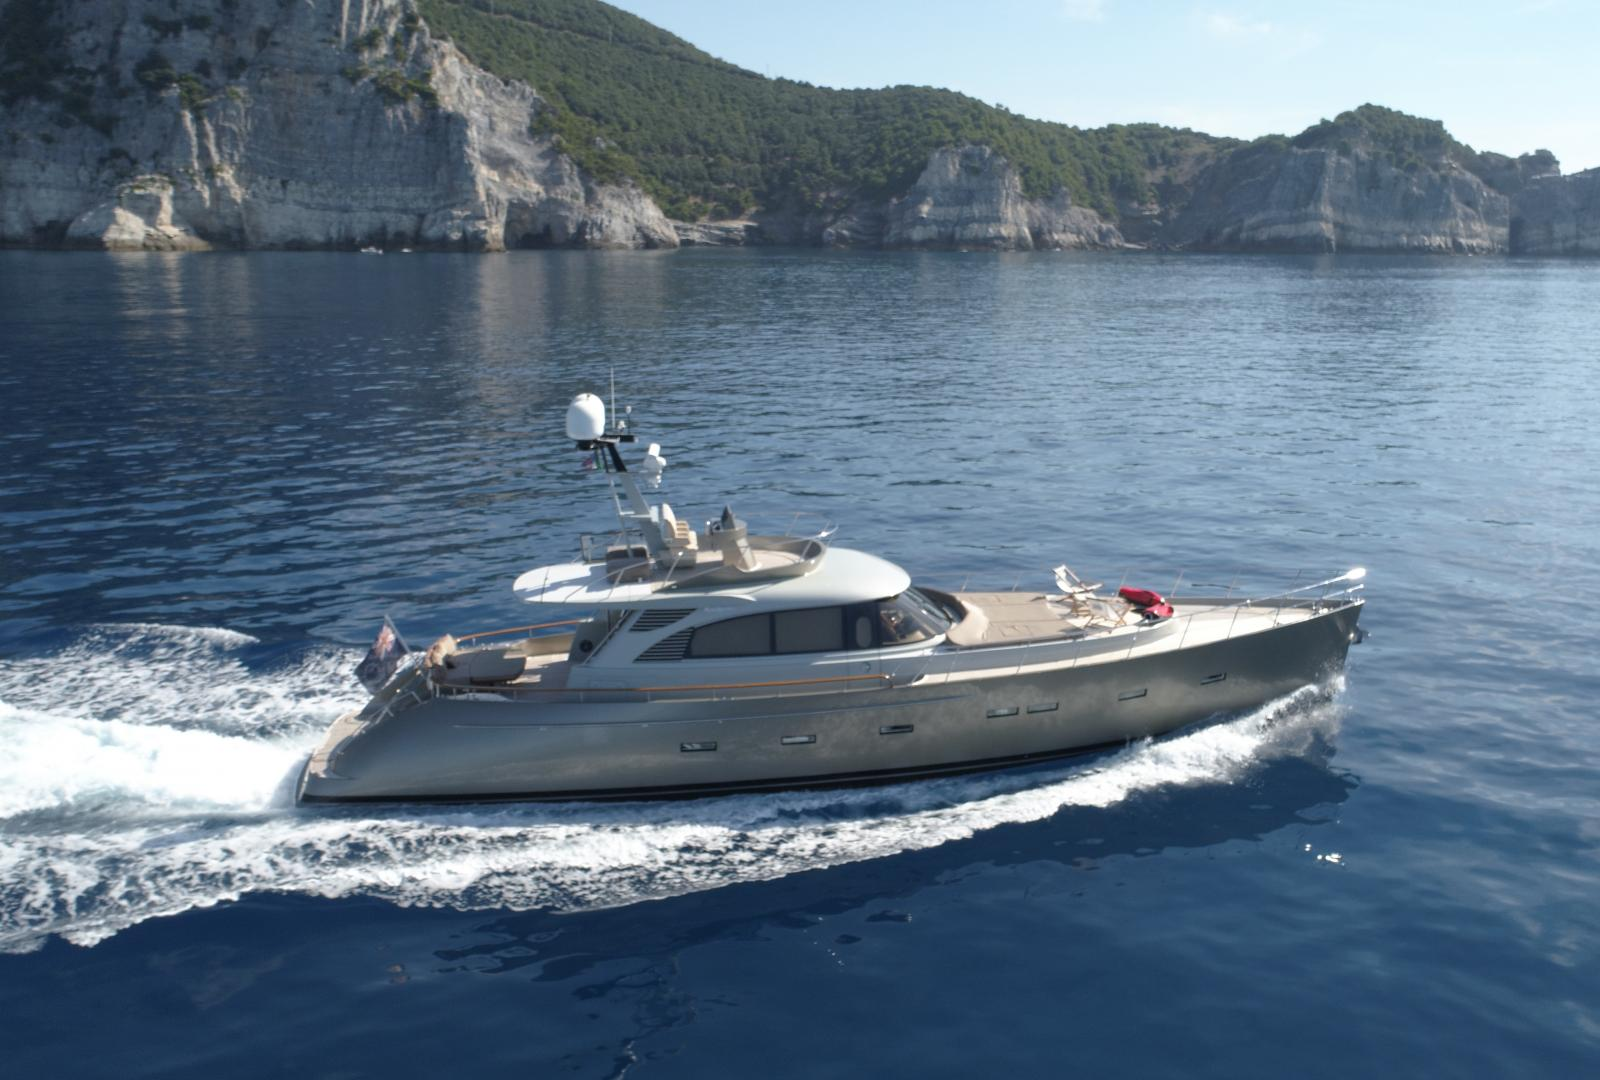 Coming soon for sale is the motoryacht Acico 74 Jasmine